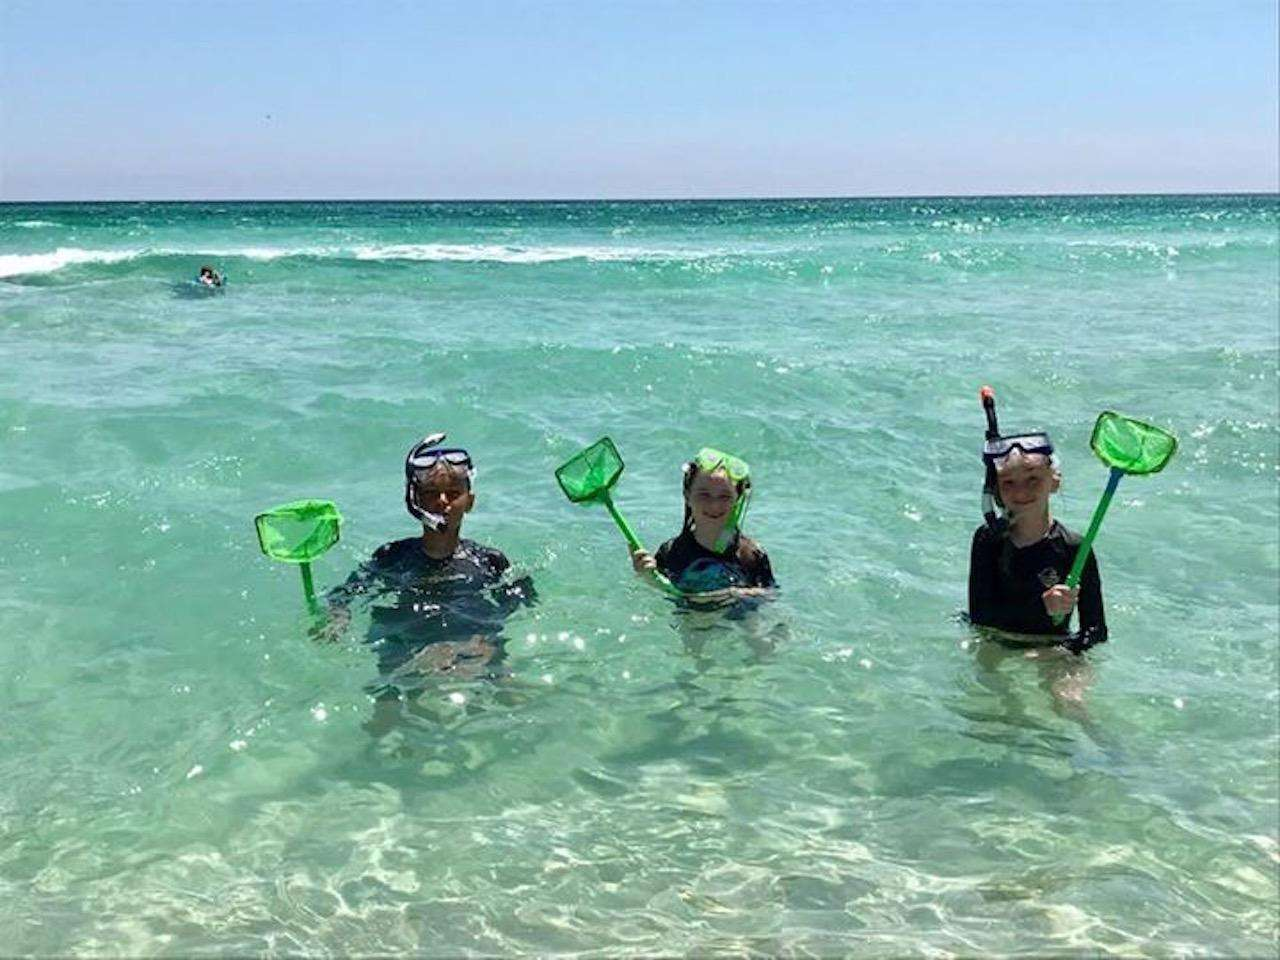 Snorkling on the beach behind Corona Del Mar